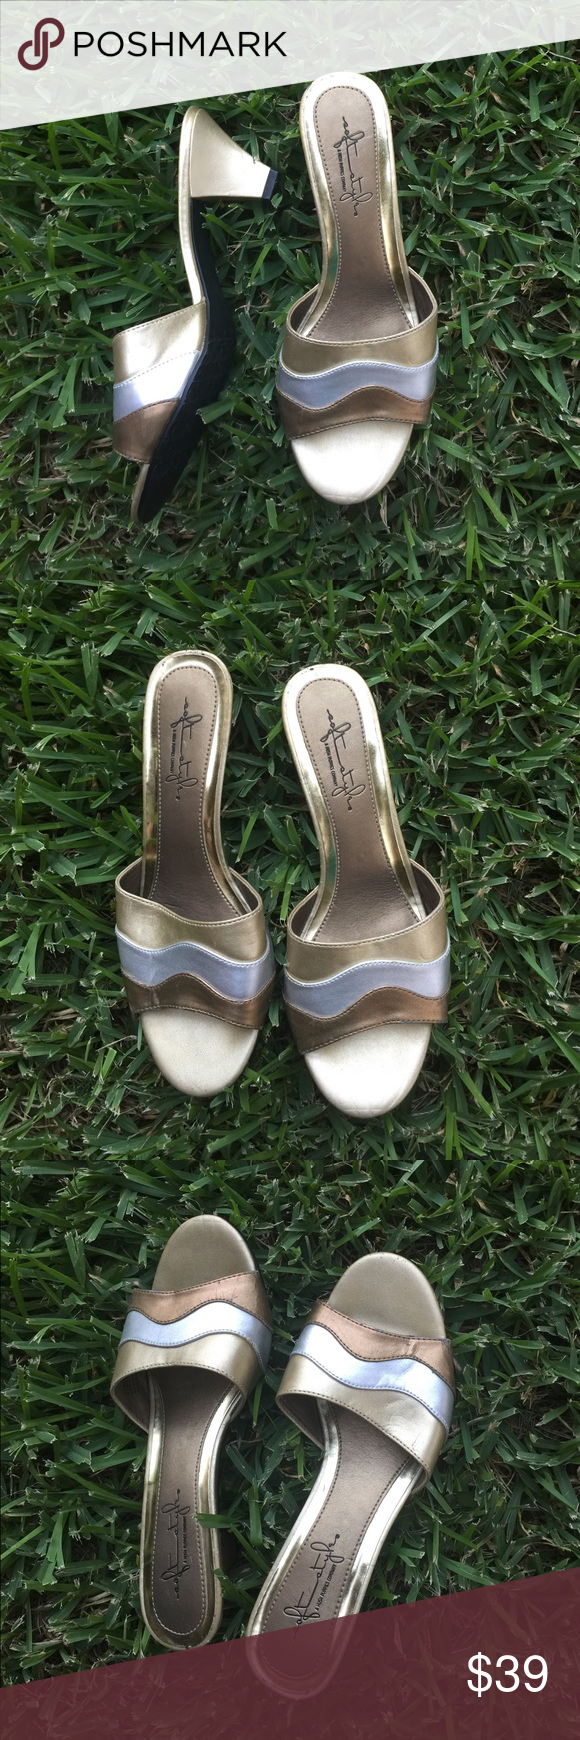 Hush Puppy Gold 7 5 Medium Sandal Woman S Ladies Made From A Hush Puppies Company Good 7 5 Medium Sandal Made In China Pre Own Fashion Shoes Hush Puppies Shoes